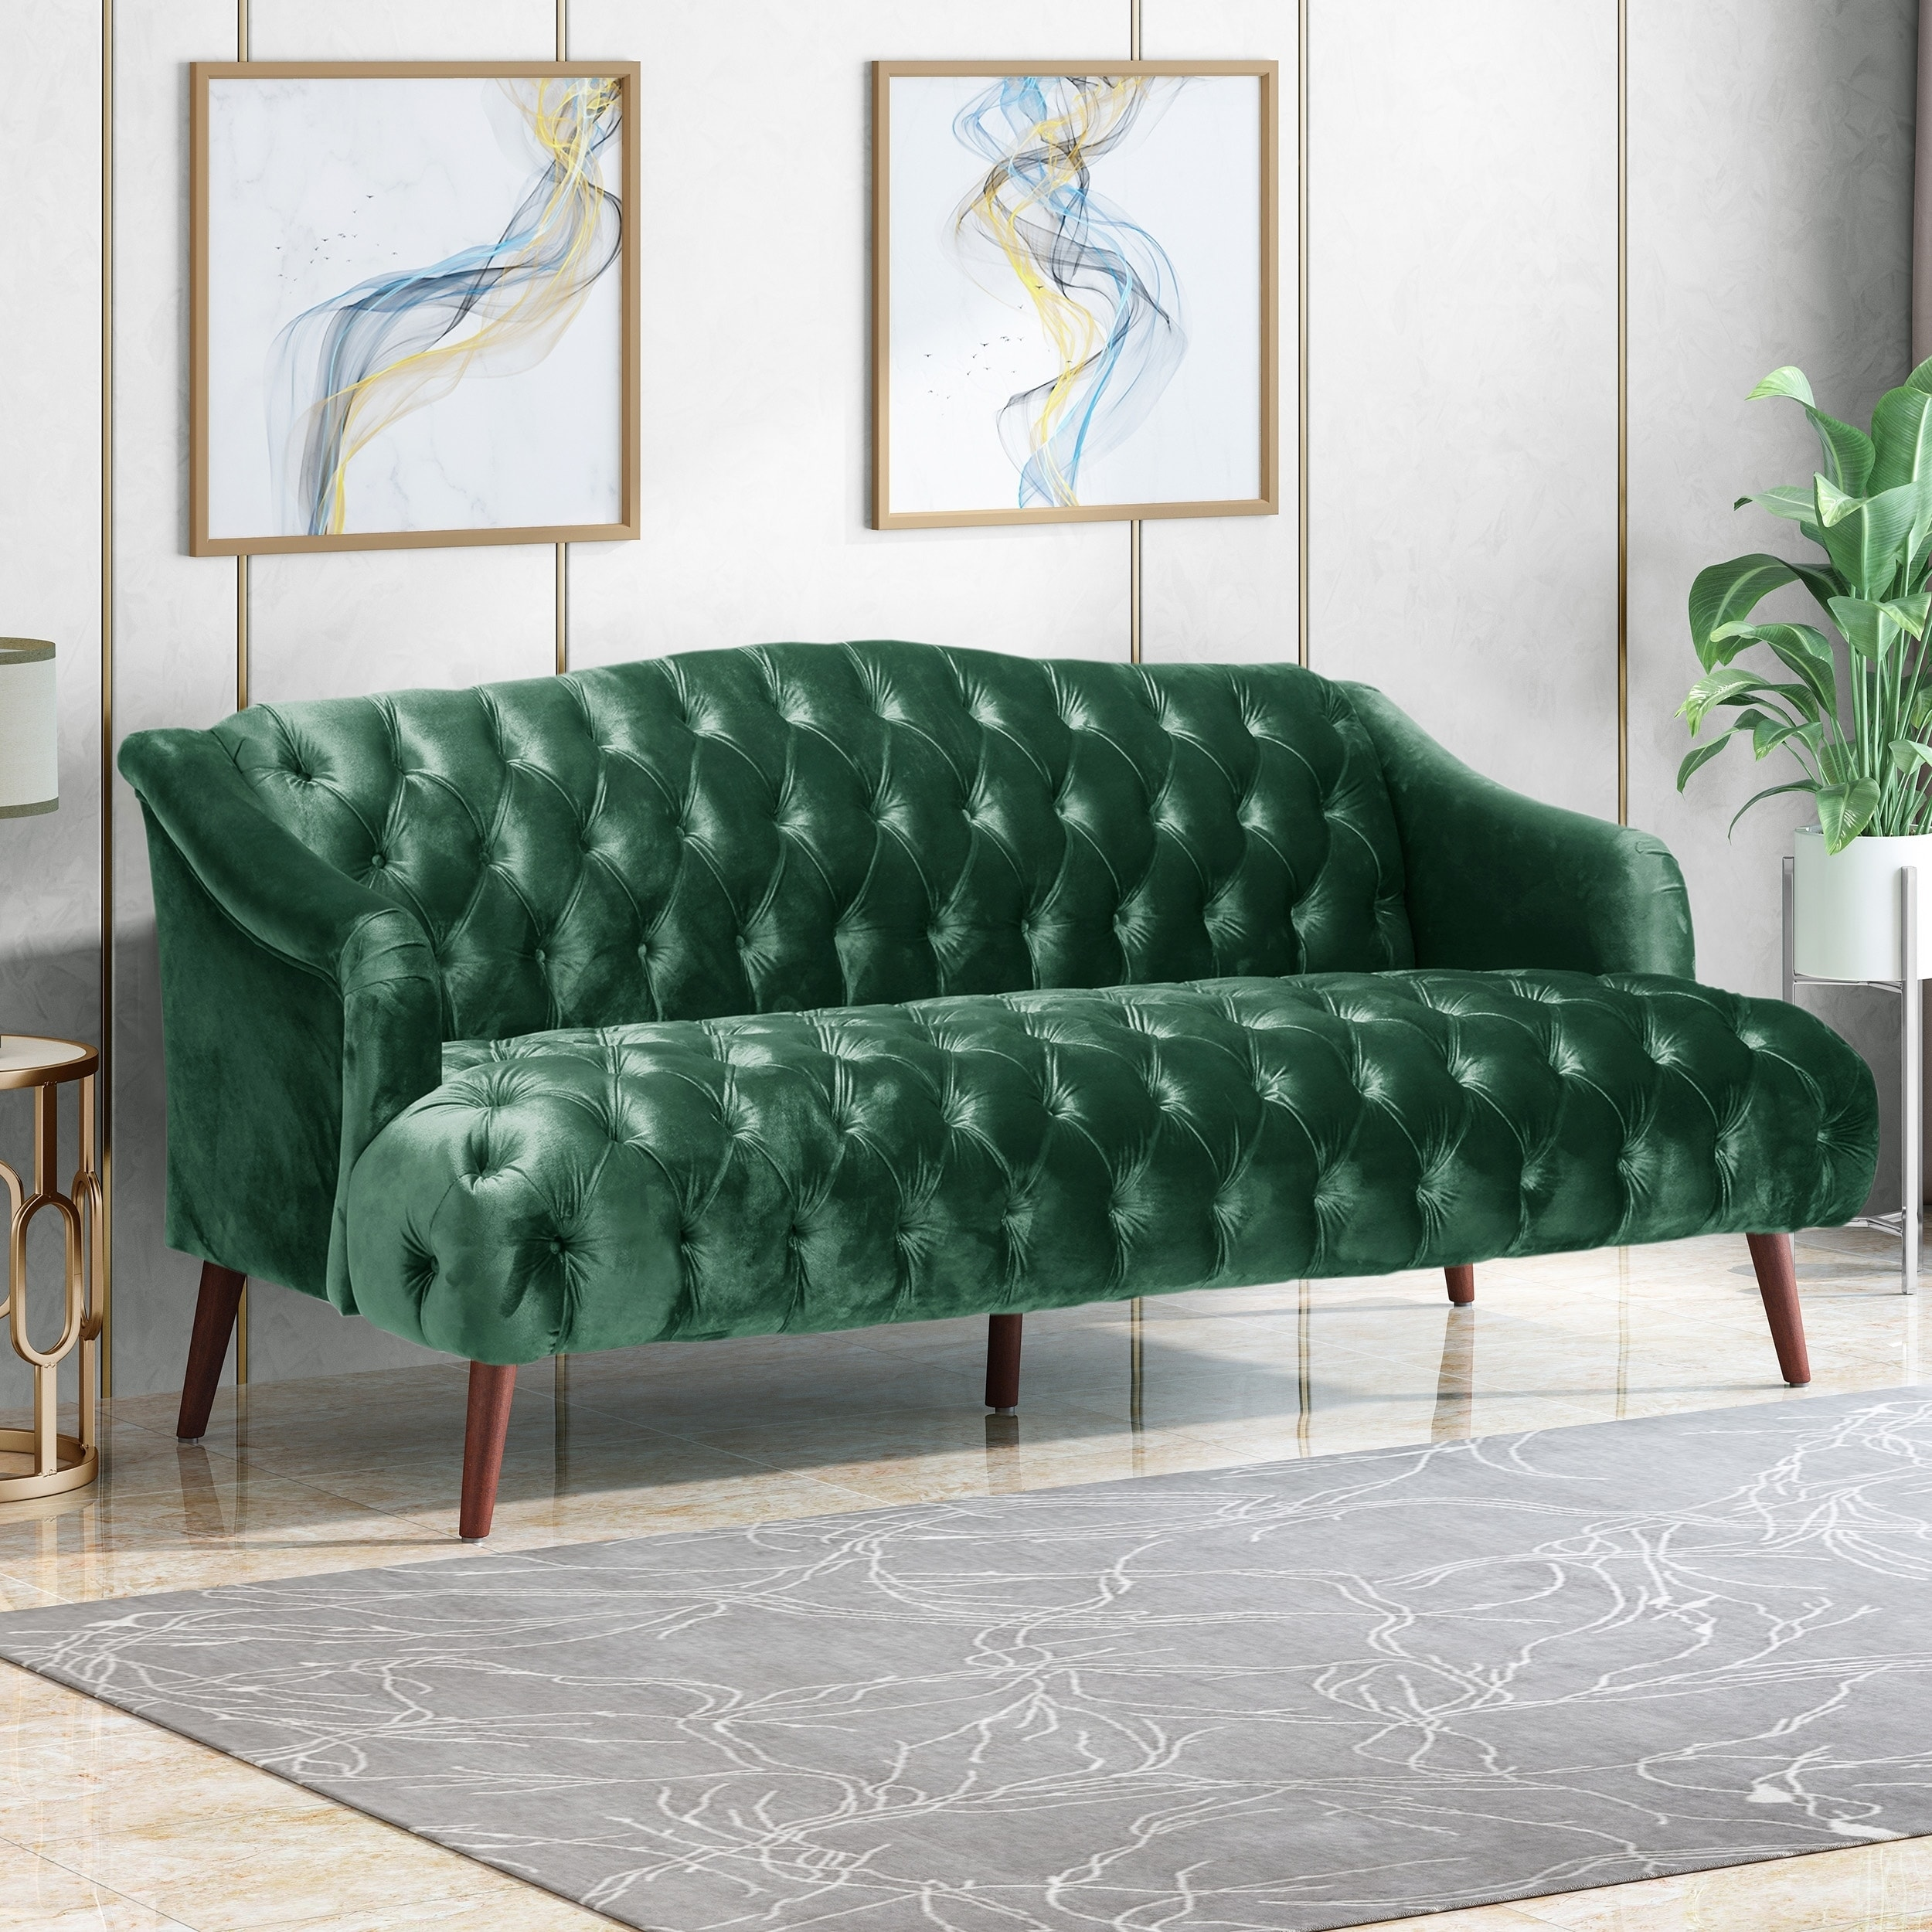 Adelia Modern Glam Tufted Velvet 3 Seater Sofa By Christopher Knight Home On Sale Overstock 28676368